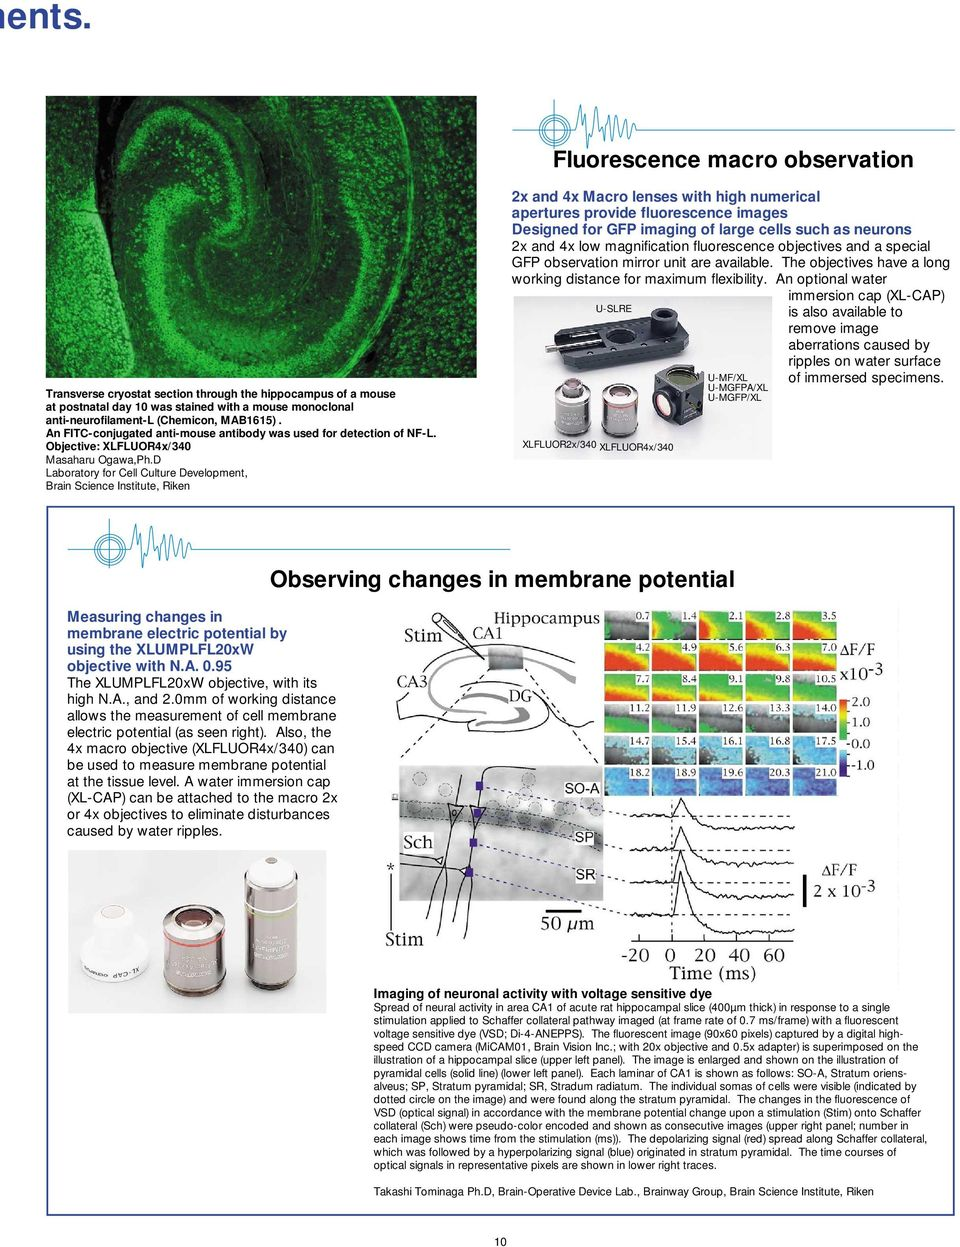 D Laboratory for Cell Culture Development, Brain Science Institute, Riken 2x and 4x Macro lenses with high numerical apertures provide fluorescence images Designed for GFP imaging of large cells such